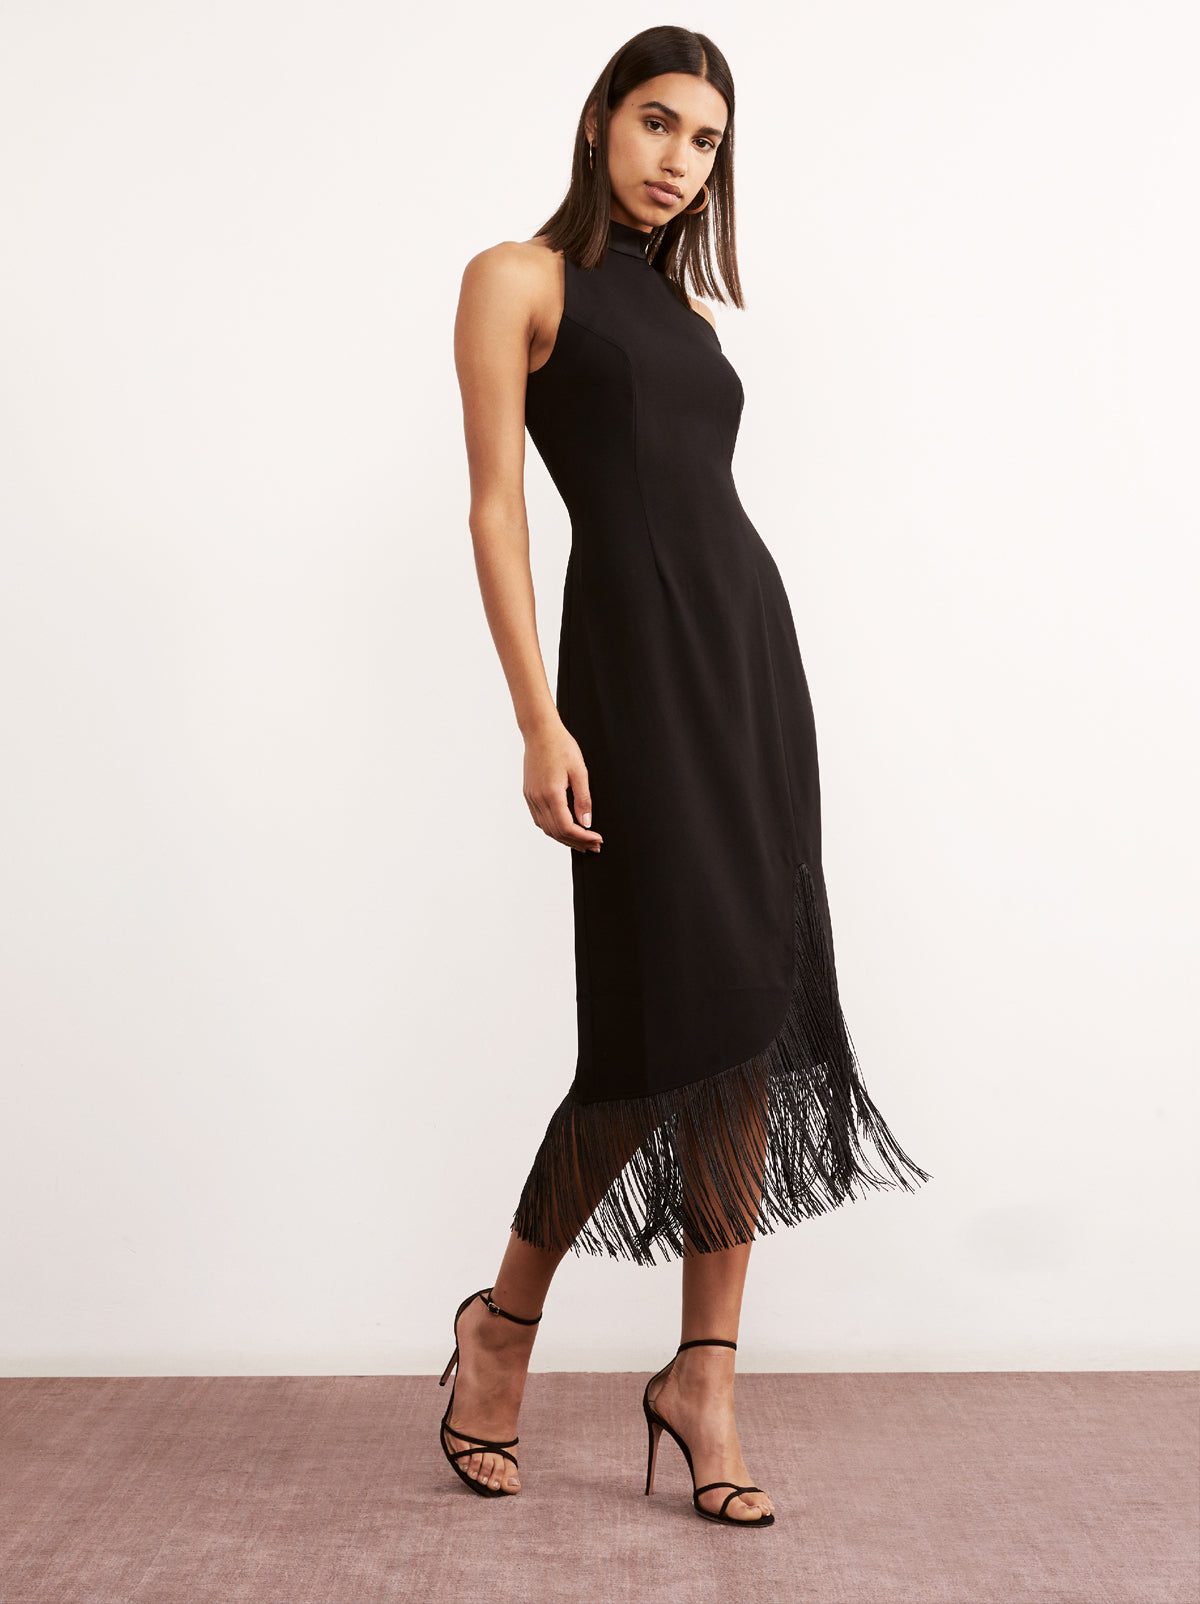 Eleanor Black Tassel Cocktail Dress by KITRI Studio